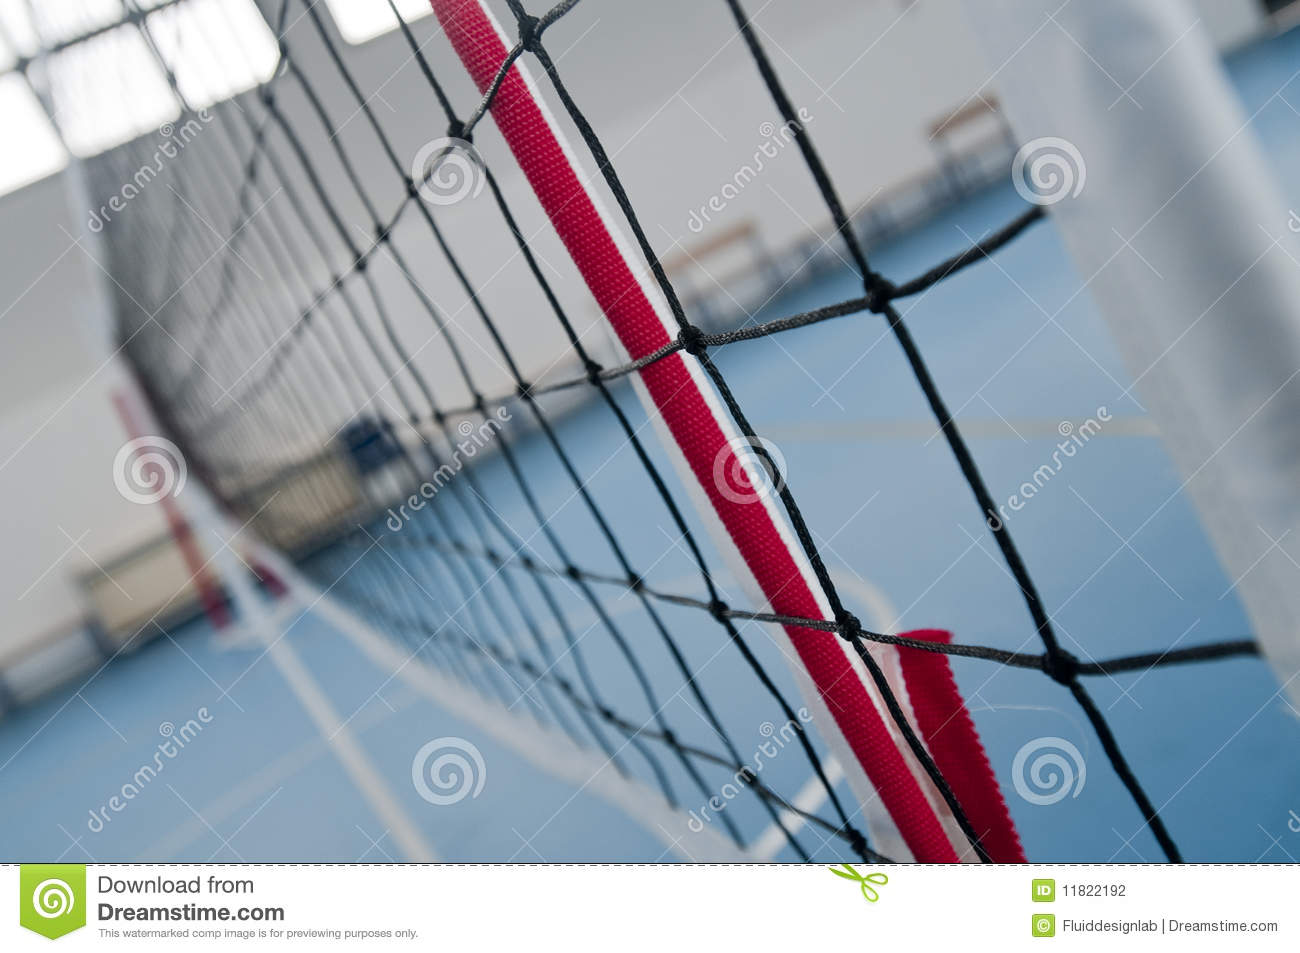 Volleyball Net Stock Photography - Image: 11822192